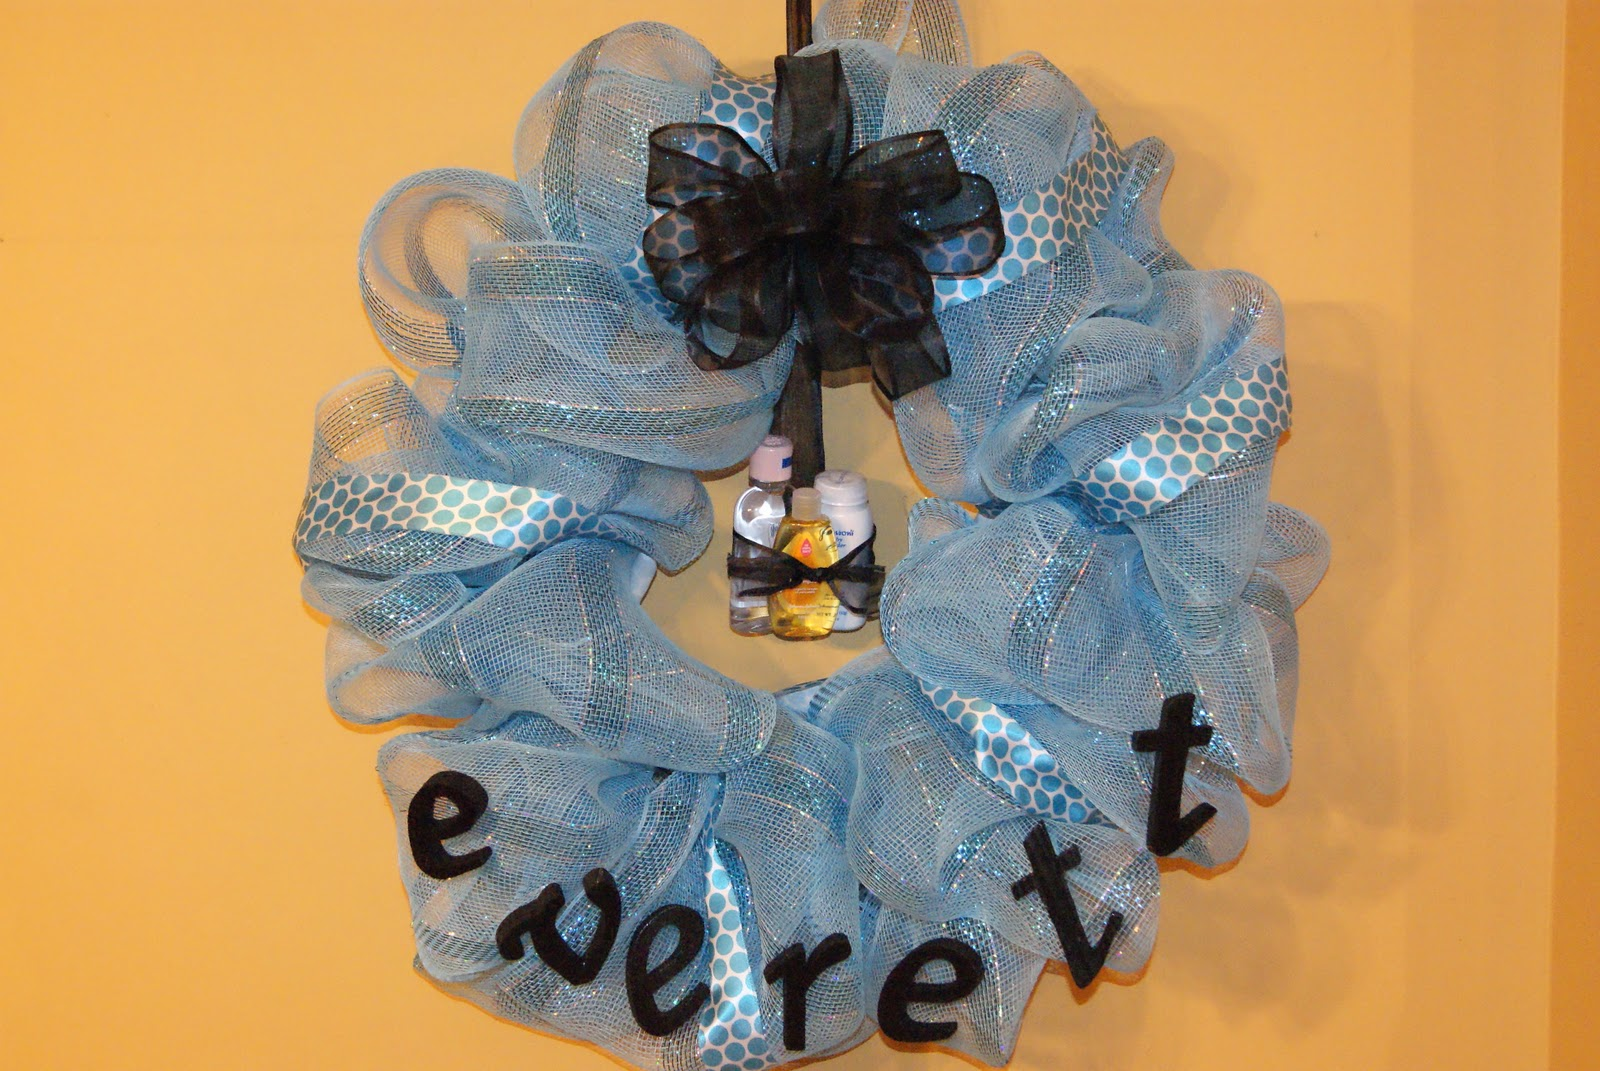 Geo Mesh Wreath Ideas http://theritzywreath.blogspot.com/2010/11/baby-showerhospital-door-wreaths.html